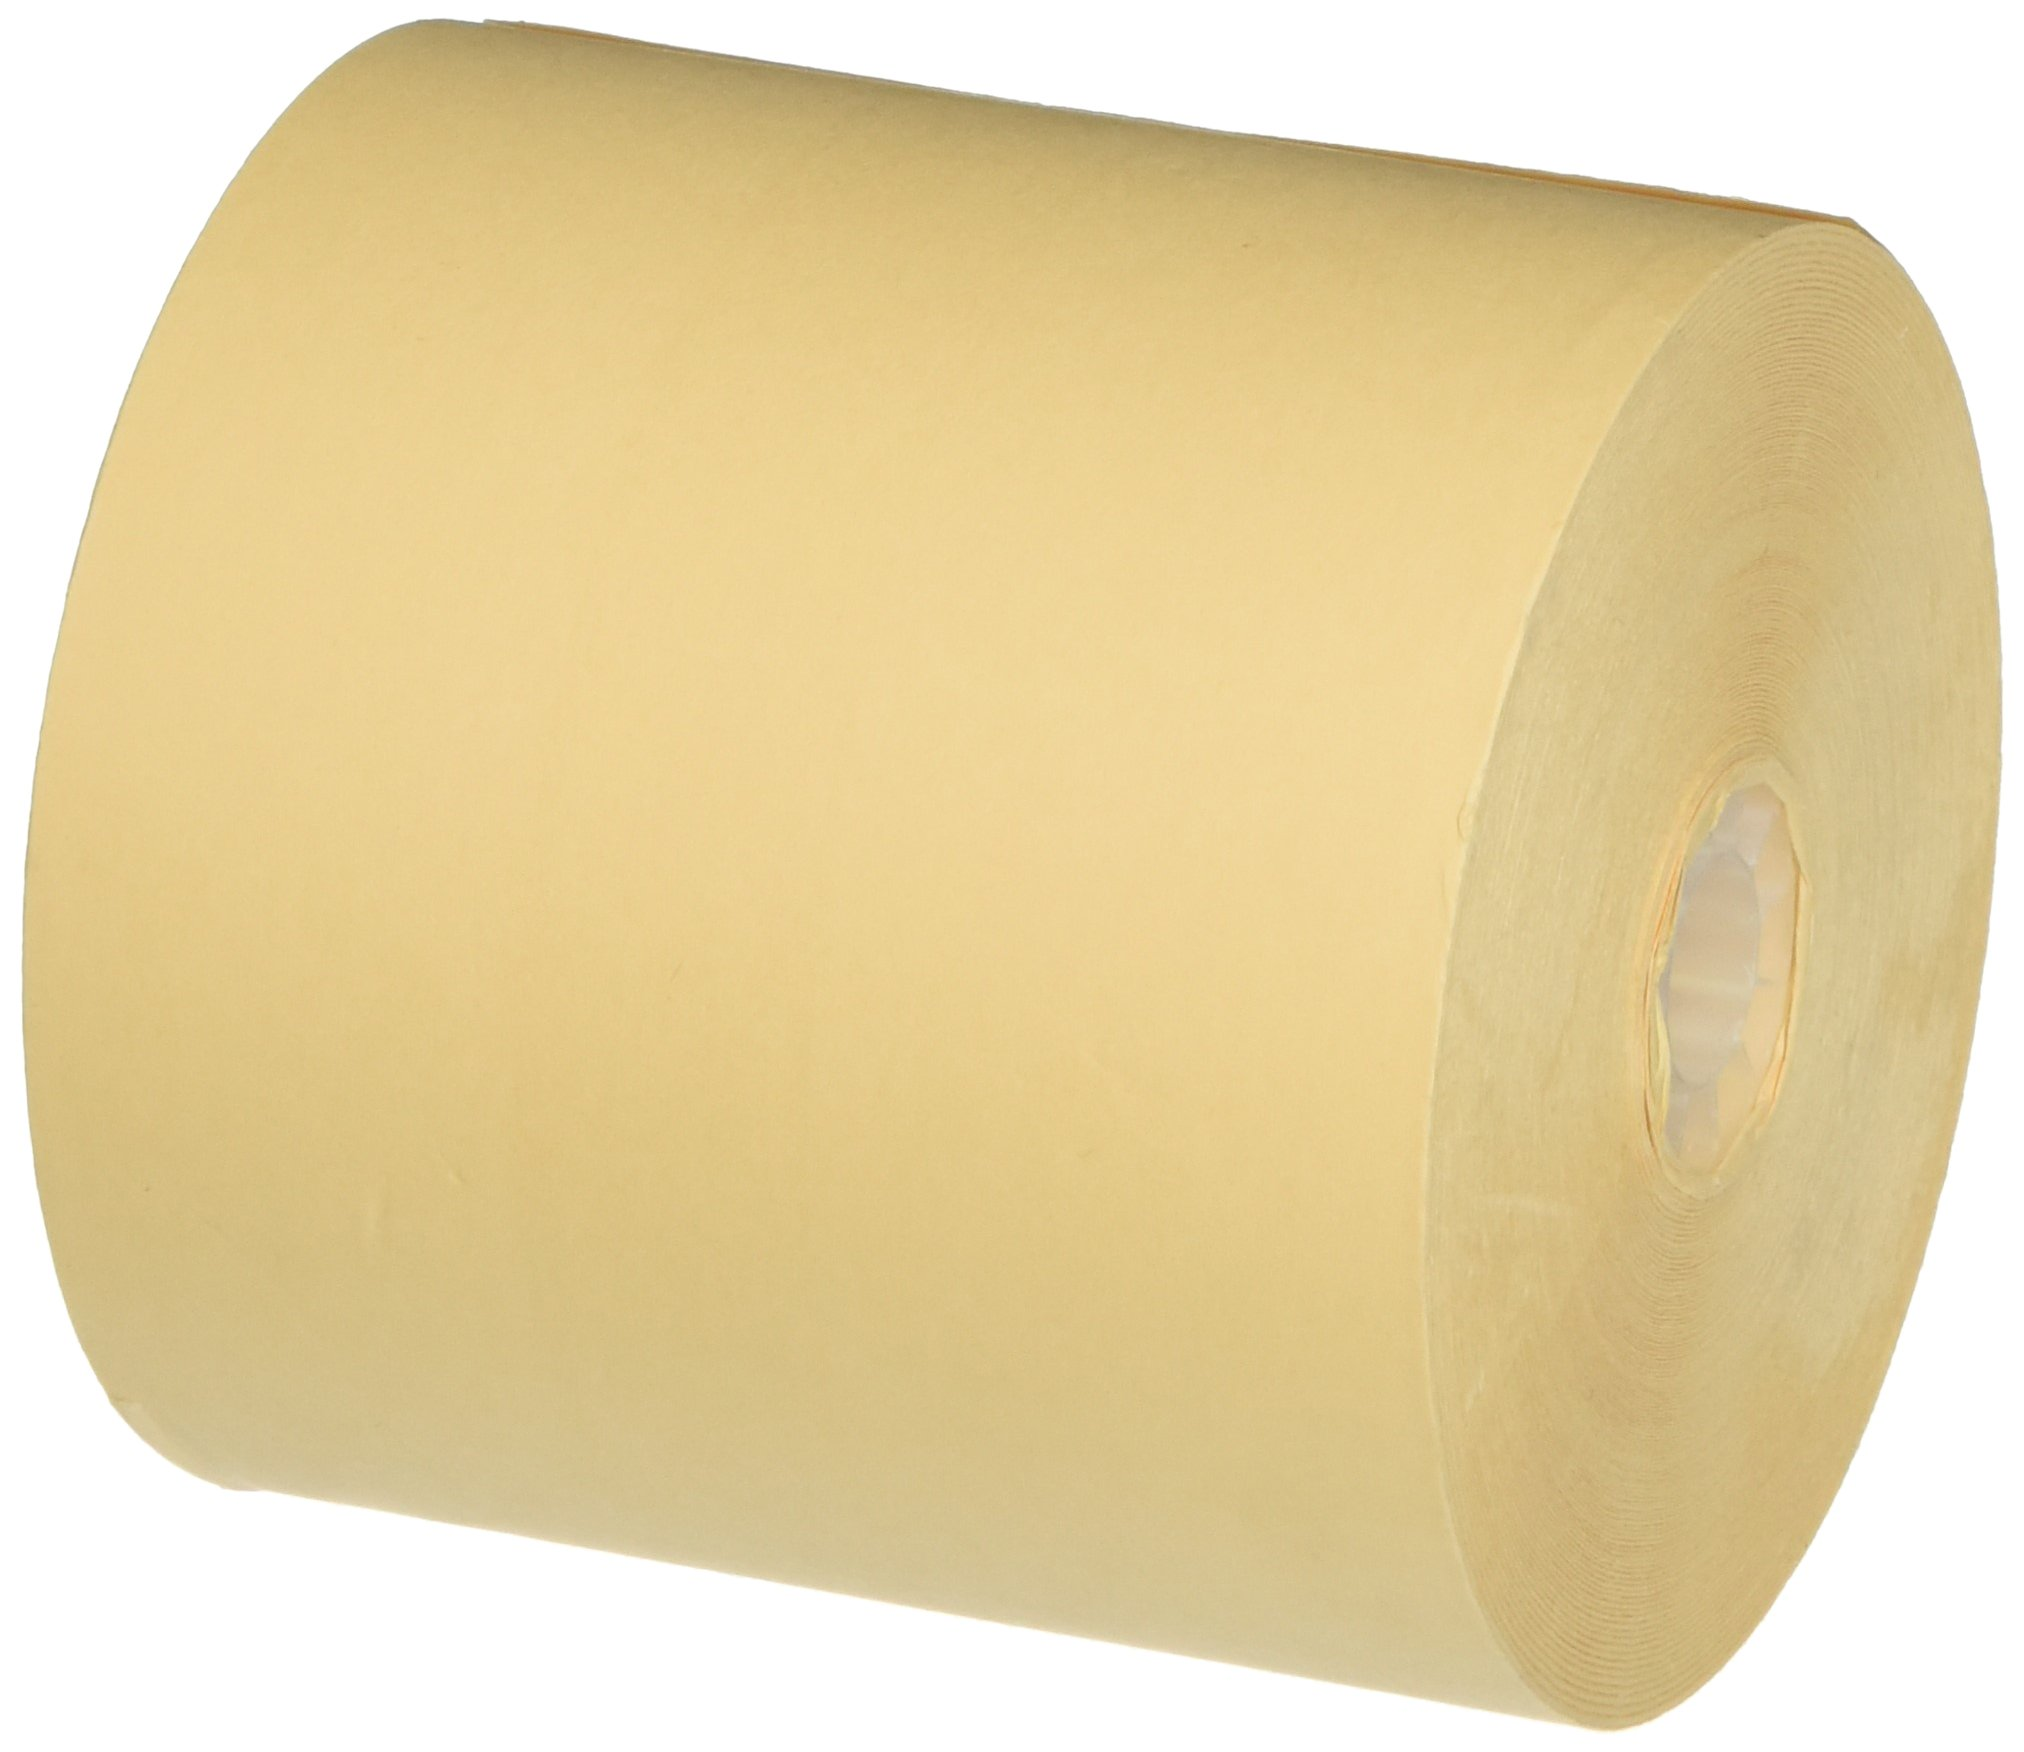 Zip Note Dispenser Refill Roll, Color : TAN or Yellow, 3'' x 150' Sold Each (ONLY ONE ROLL), Model: 0022 by Zip Notes